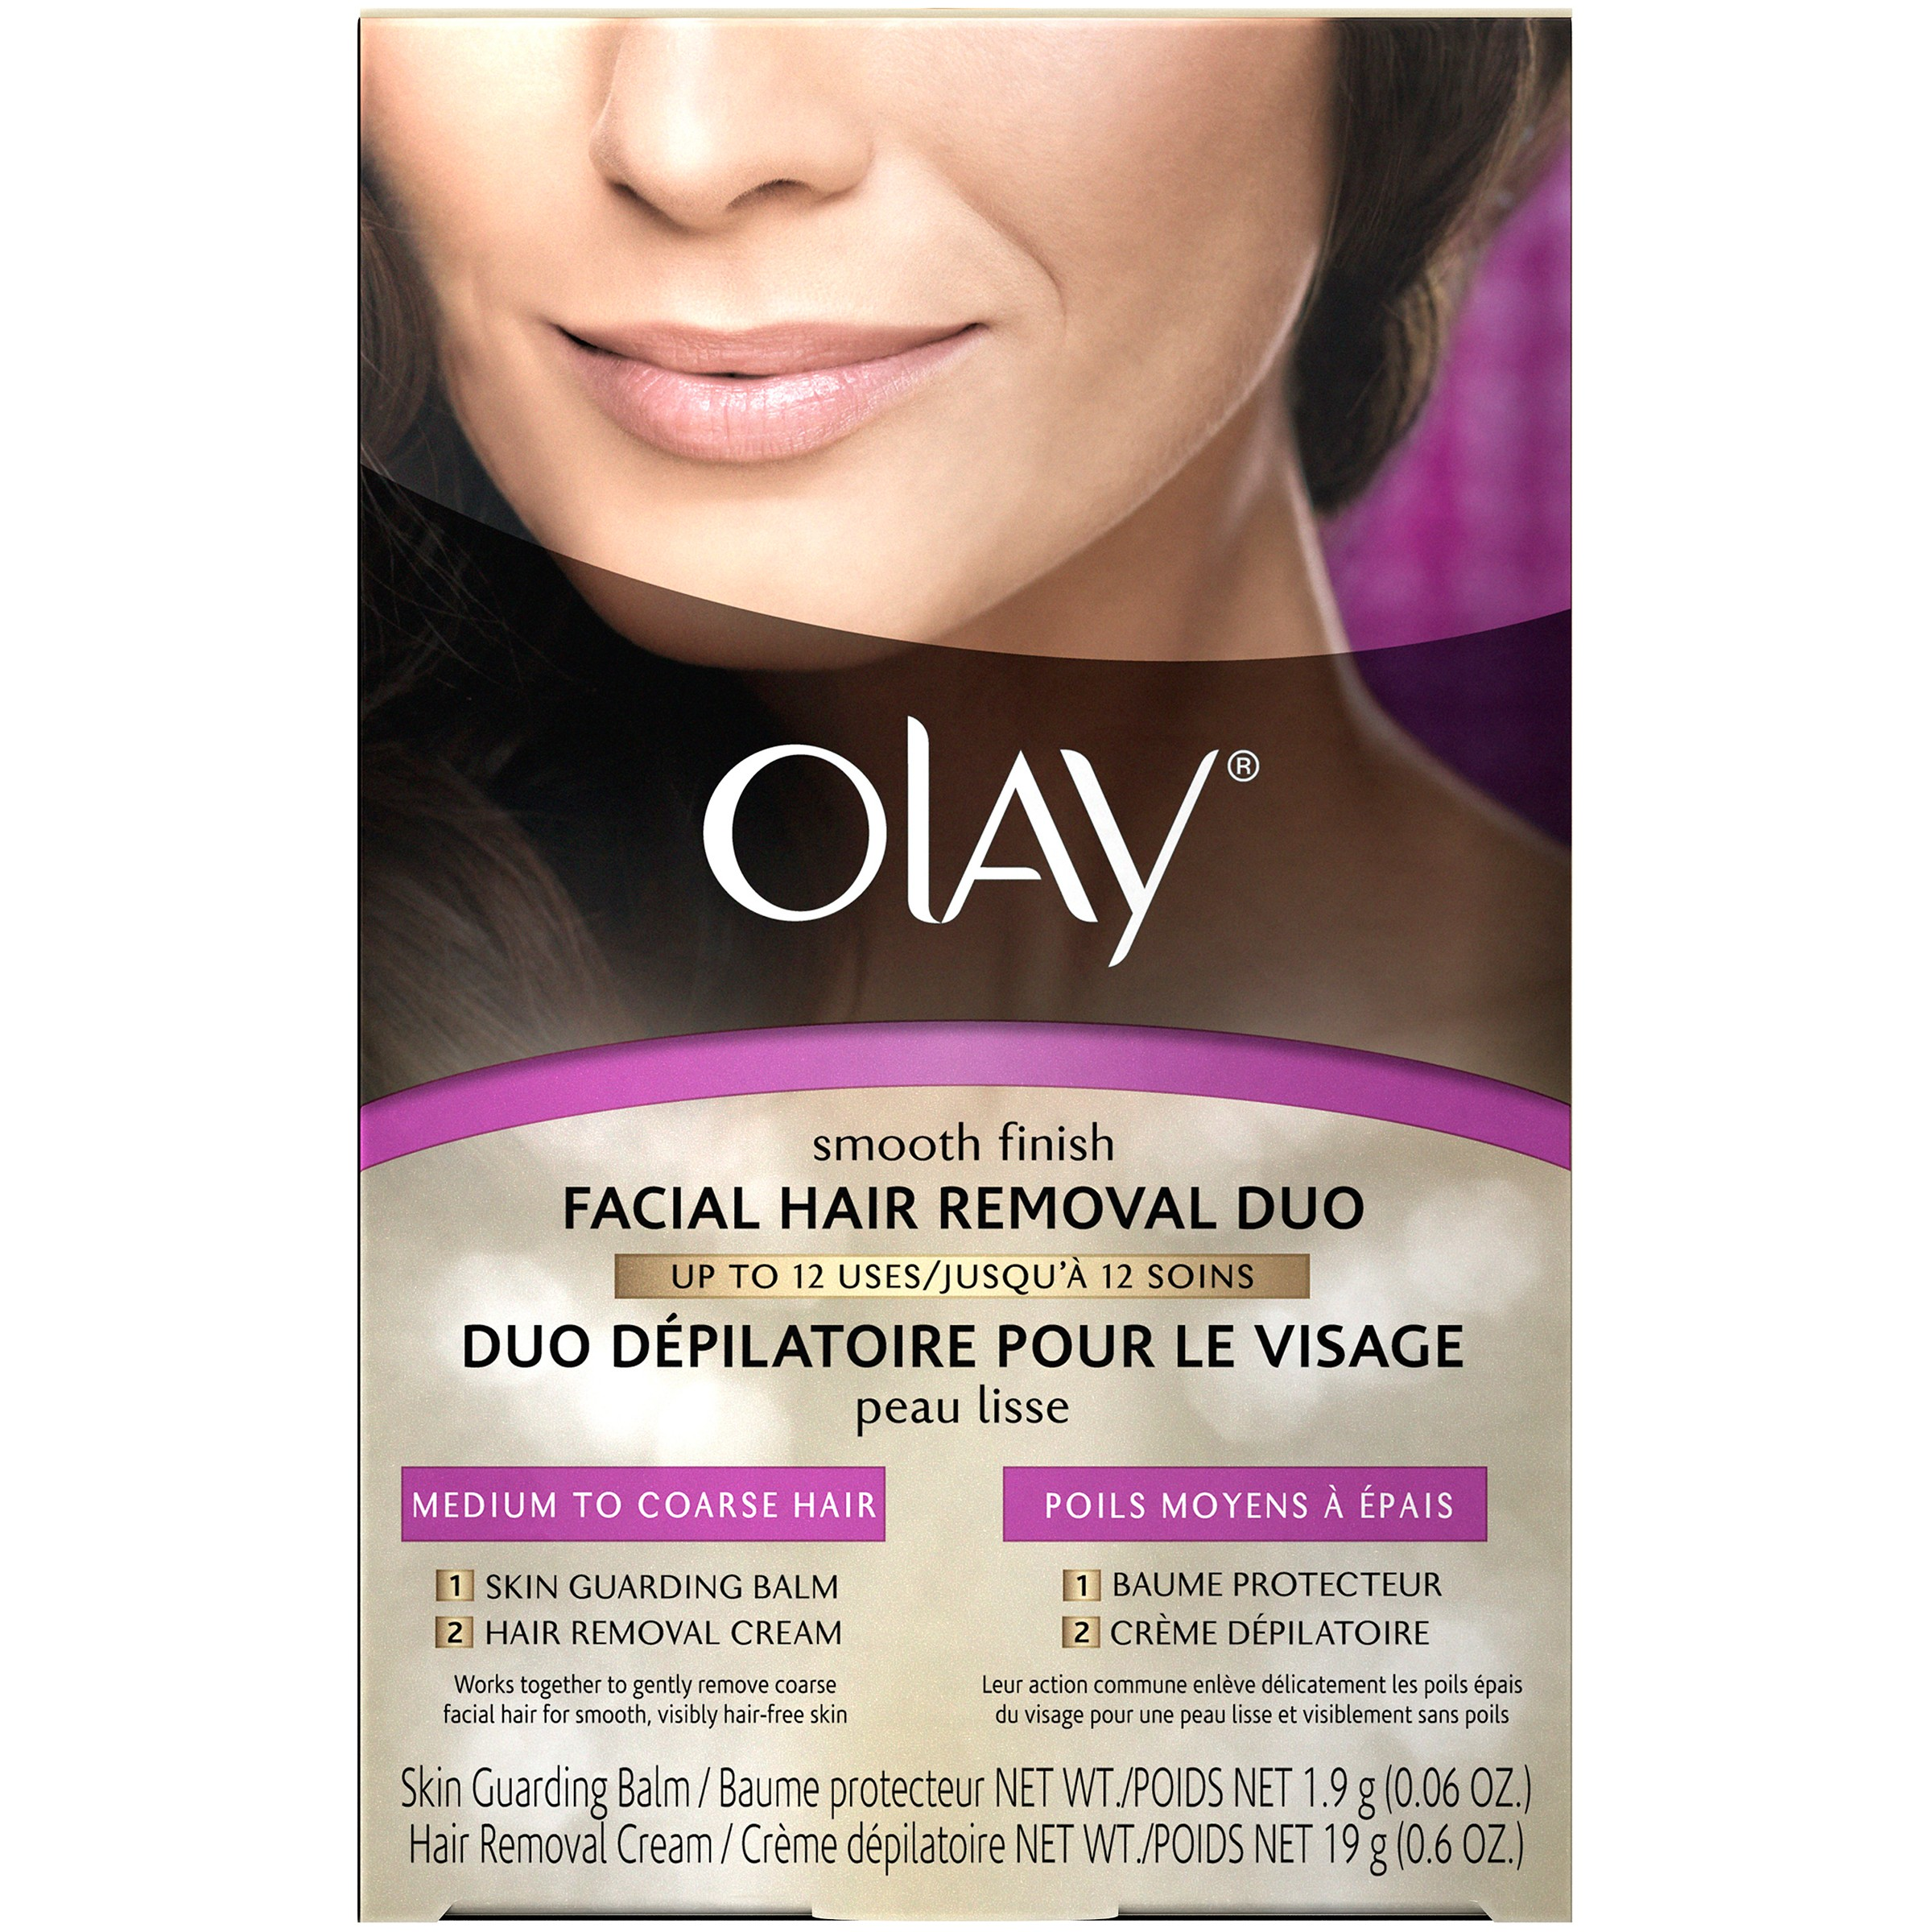 Olay facial hair removal duo walmart